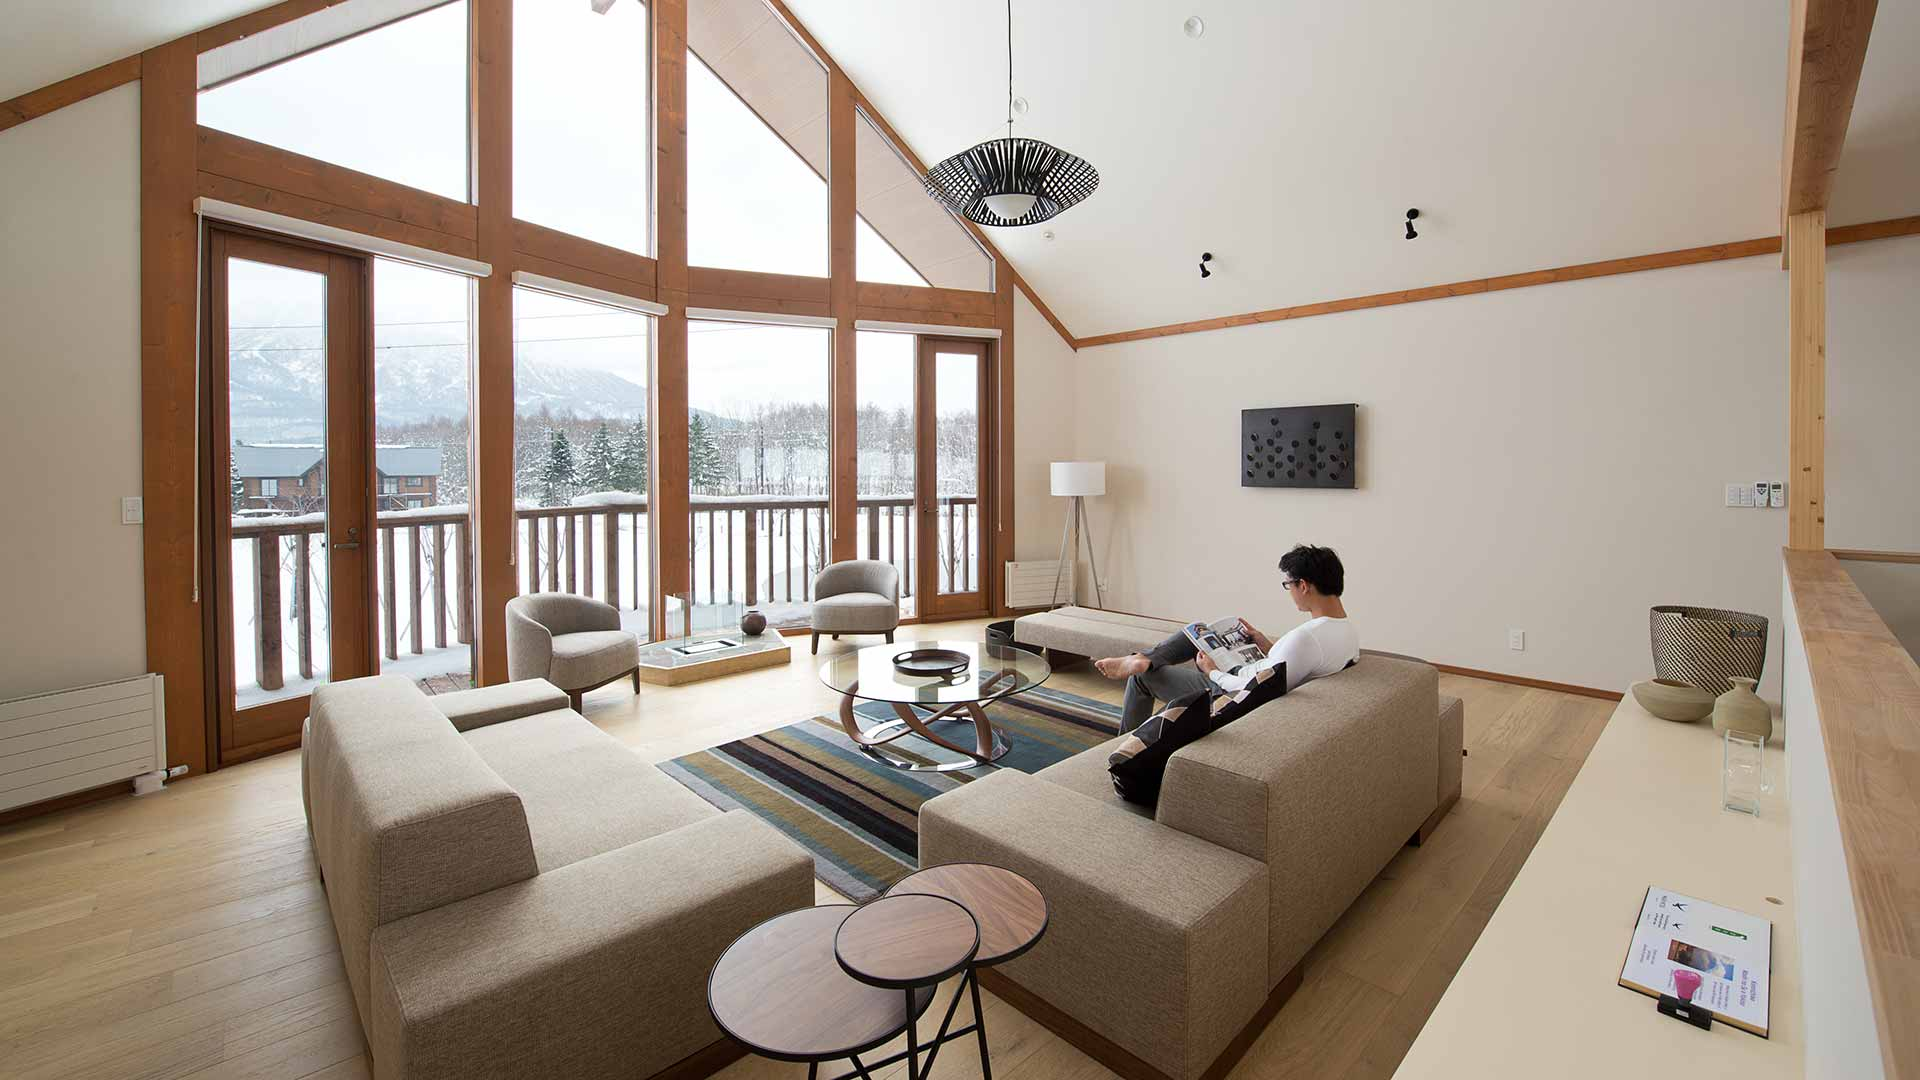 Photo of Kaede living room